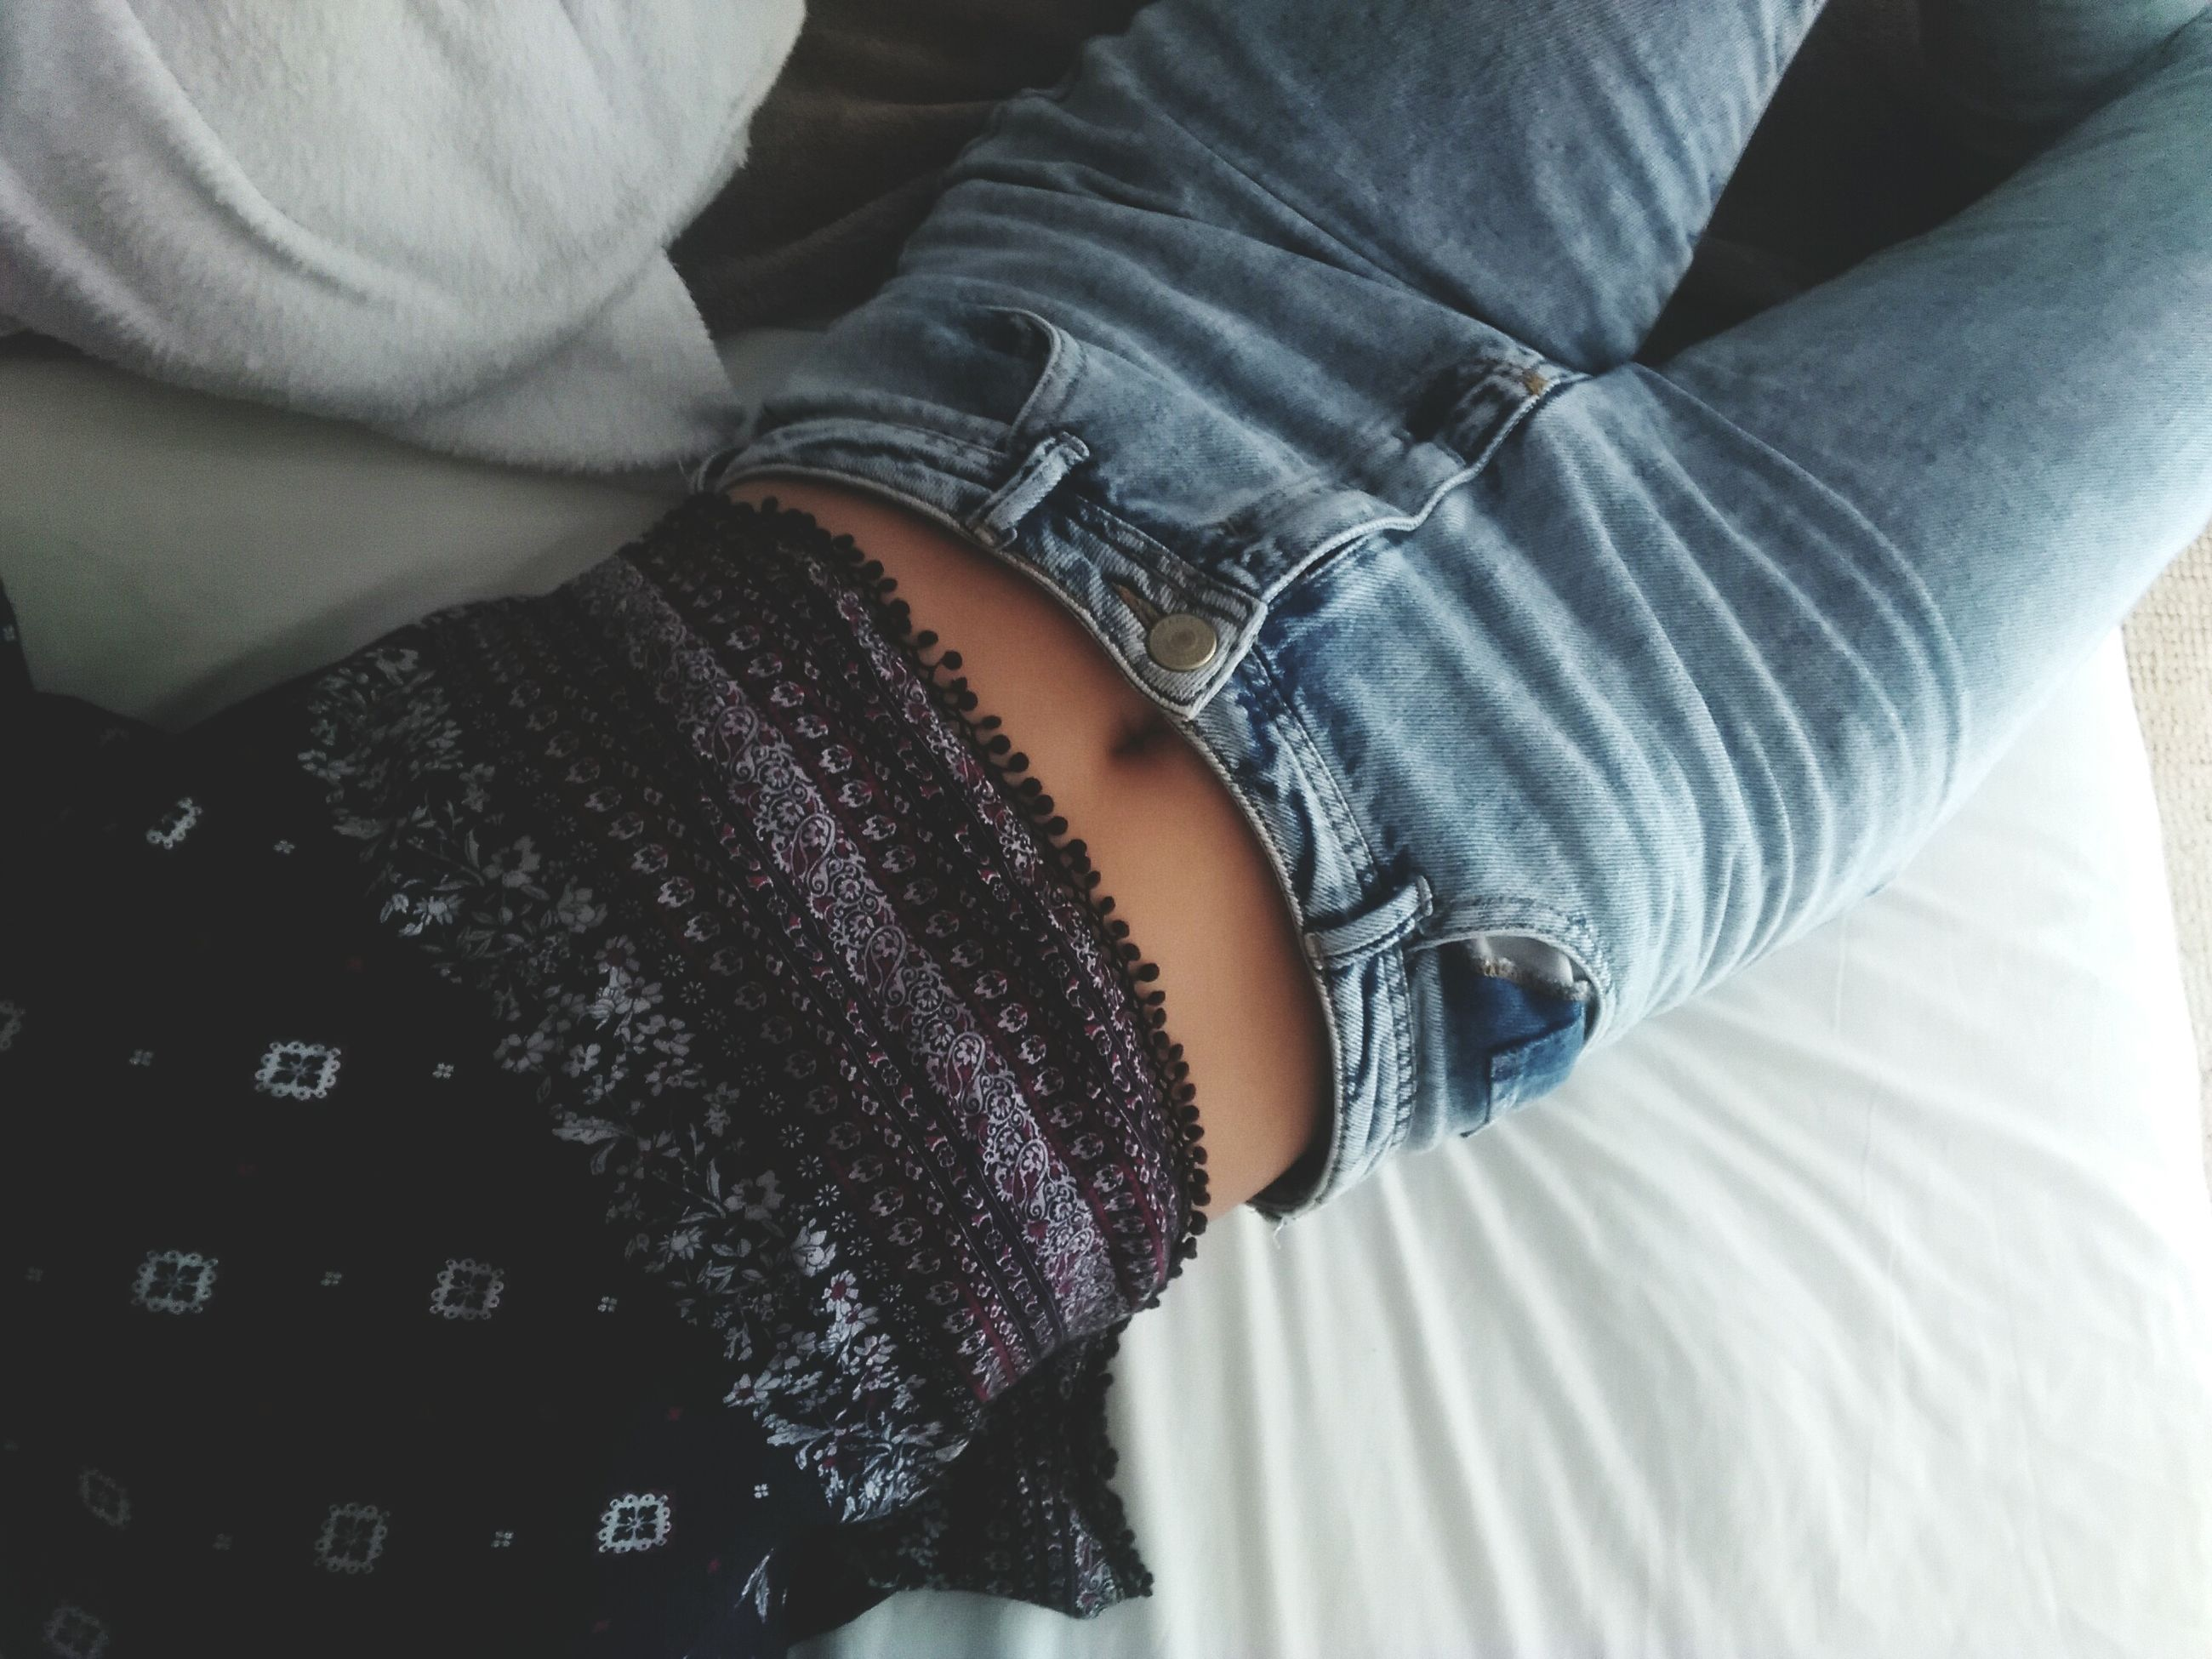 indoors, lifestyles, person, low section, casual clothing, midsection, leisure activity, bed, men, high angle view, part of, jeans, close-up, holding, mid section